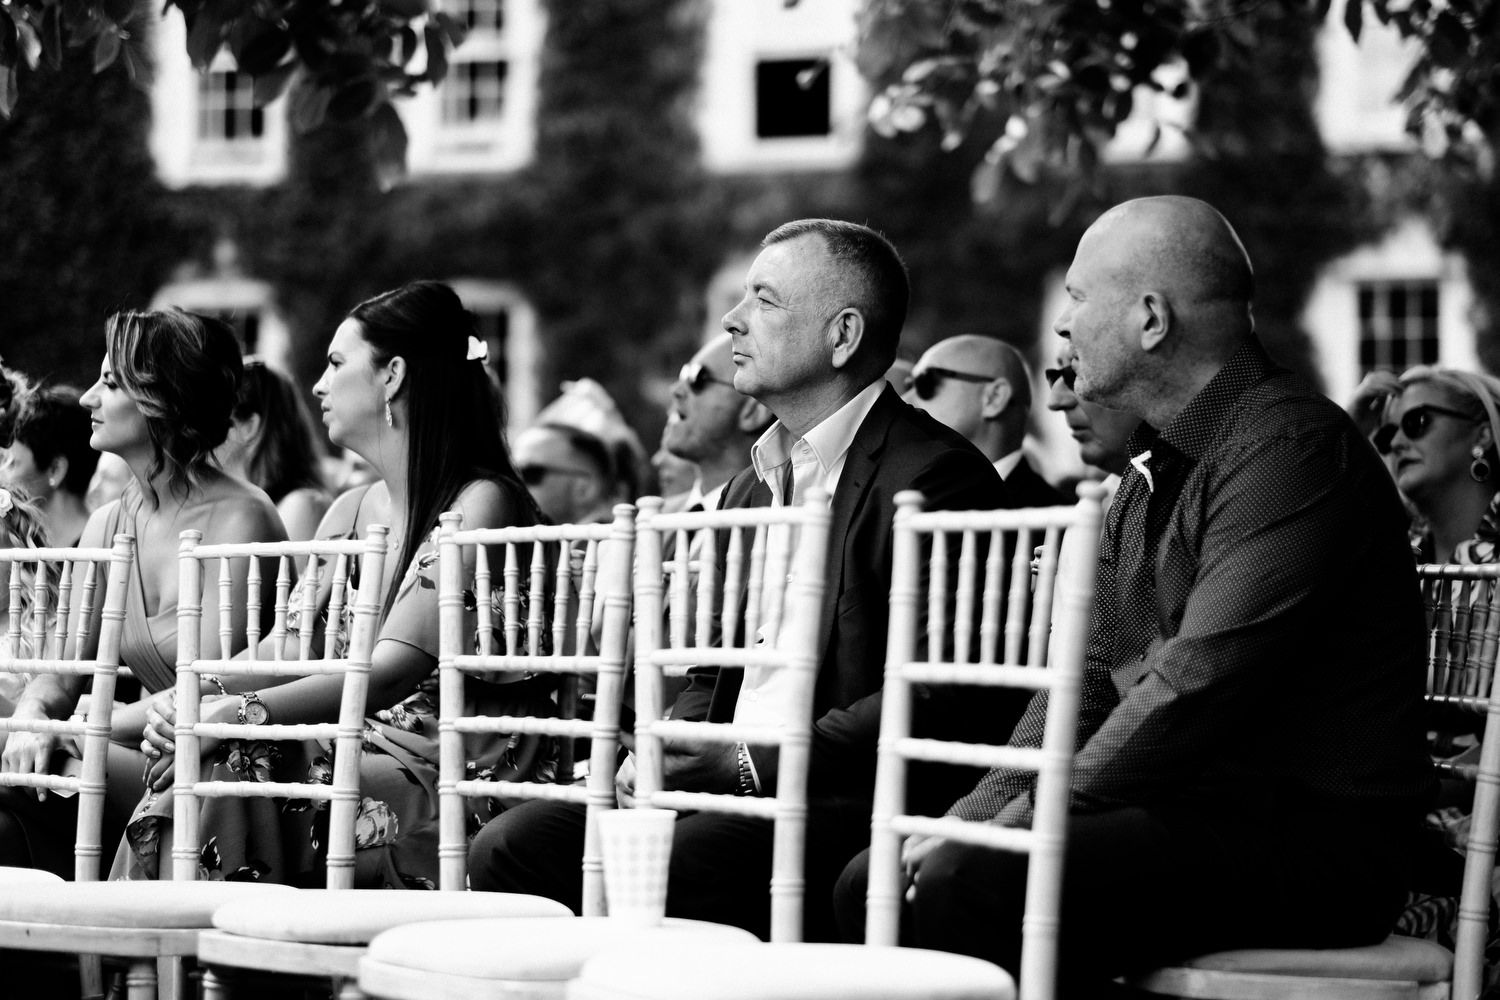 dmp0417_candid_brides_gay_ballintubbert_photography_ireland_ceremony_laois_documentary_outdoor_relaxed_twobrides_wedding_samesex_house_fun